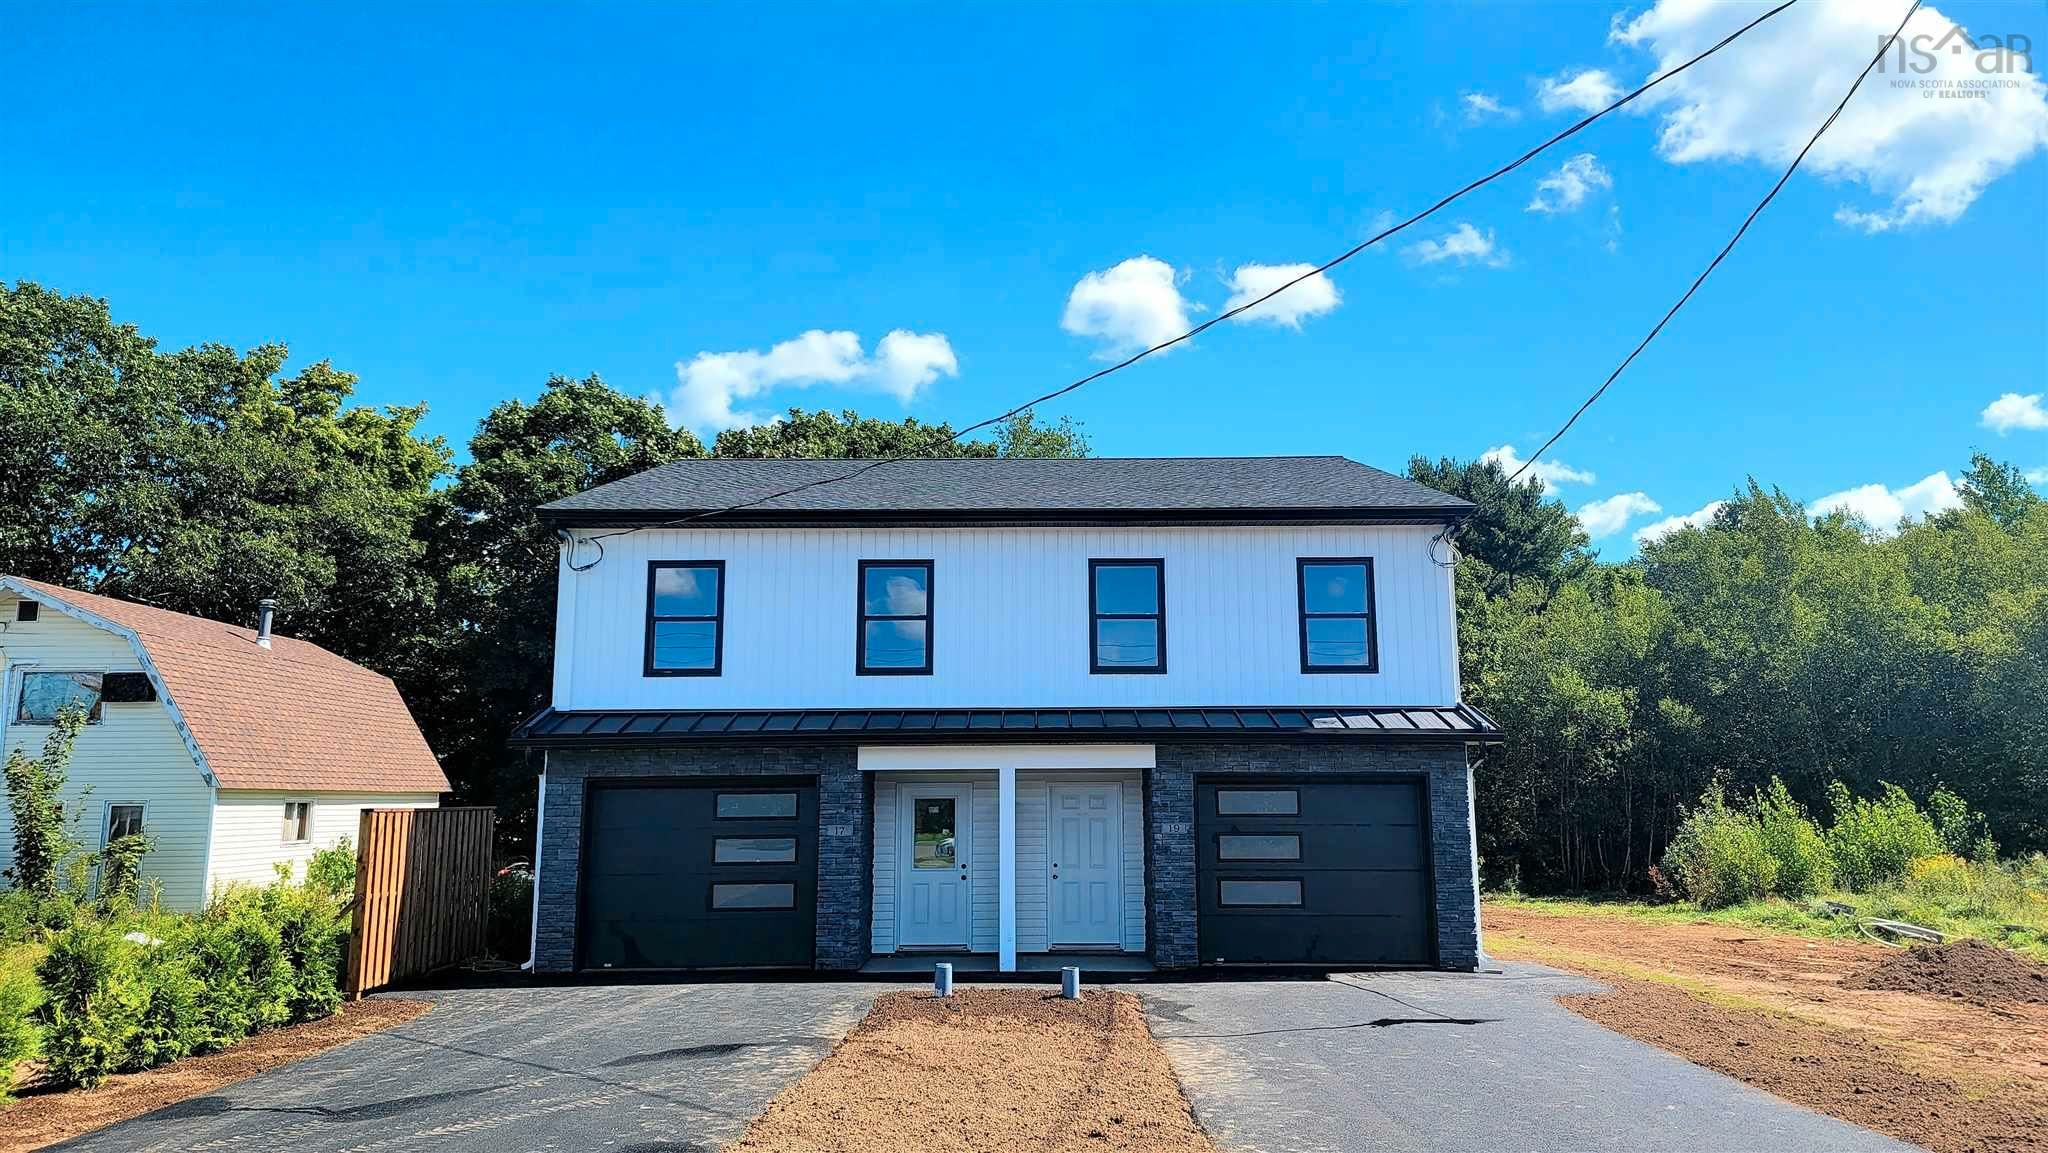 Main Photo: 19 Turner Drive in New Minas: 404-Kings County Residential for sale (Annapolis Valley)  : MLS®# 202123670